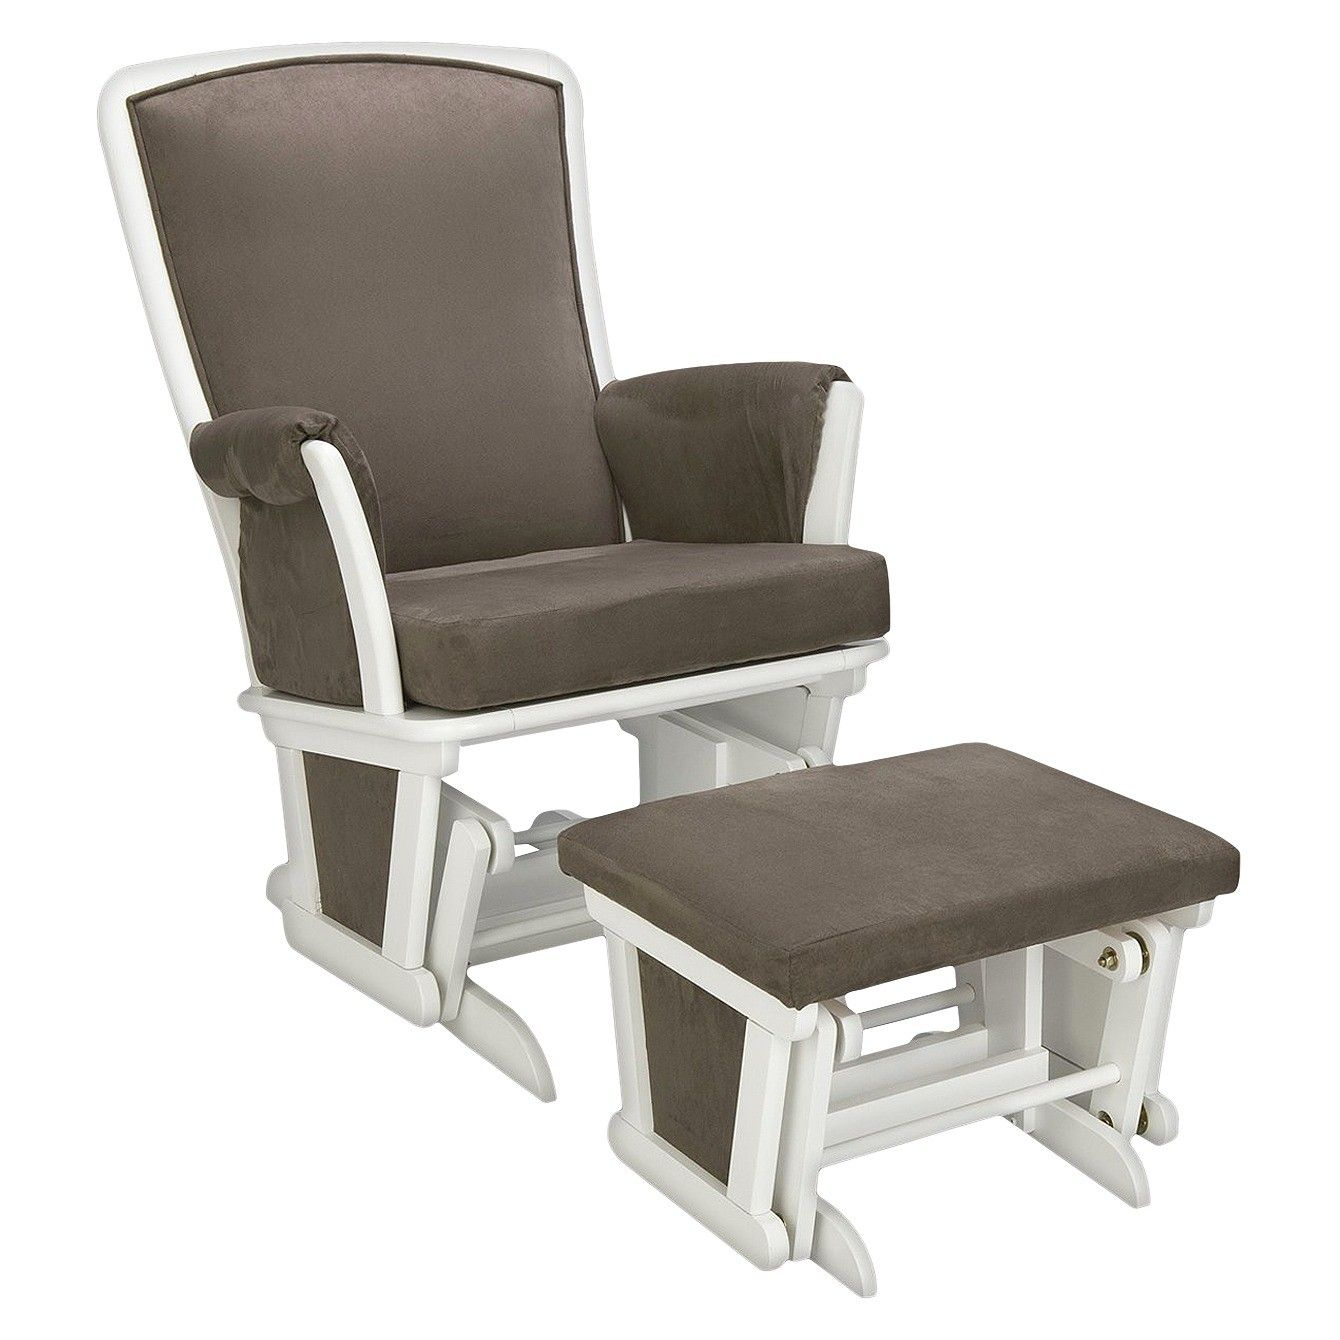 Delta haven glider and ottoman set target glider and